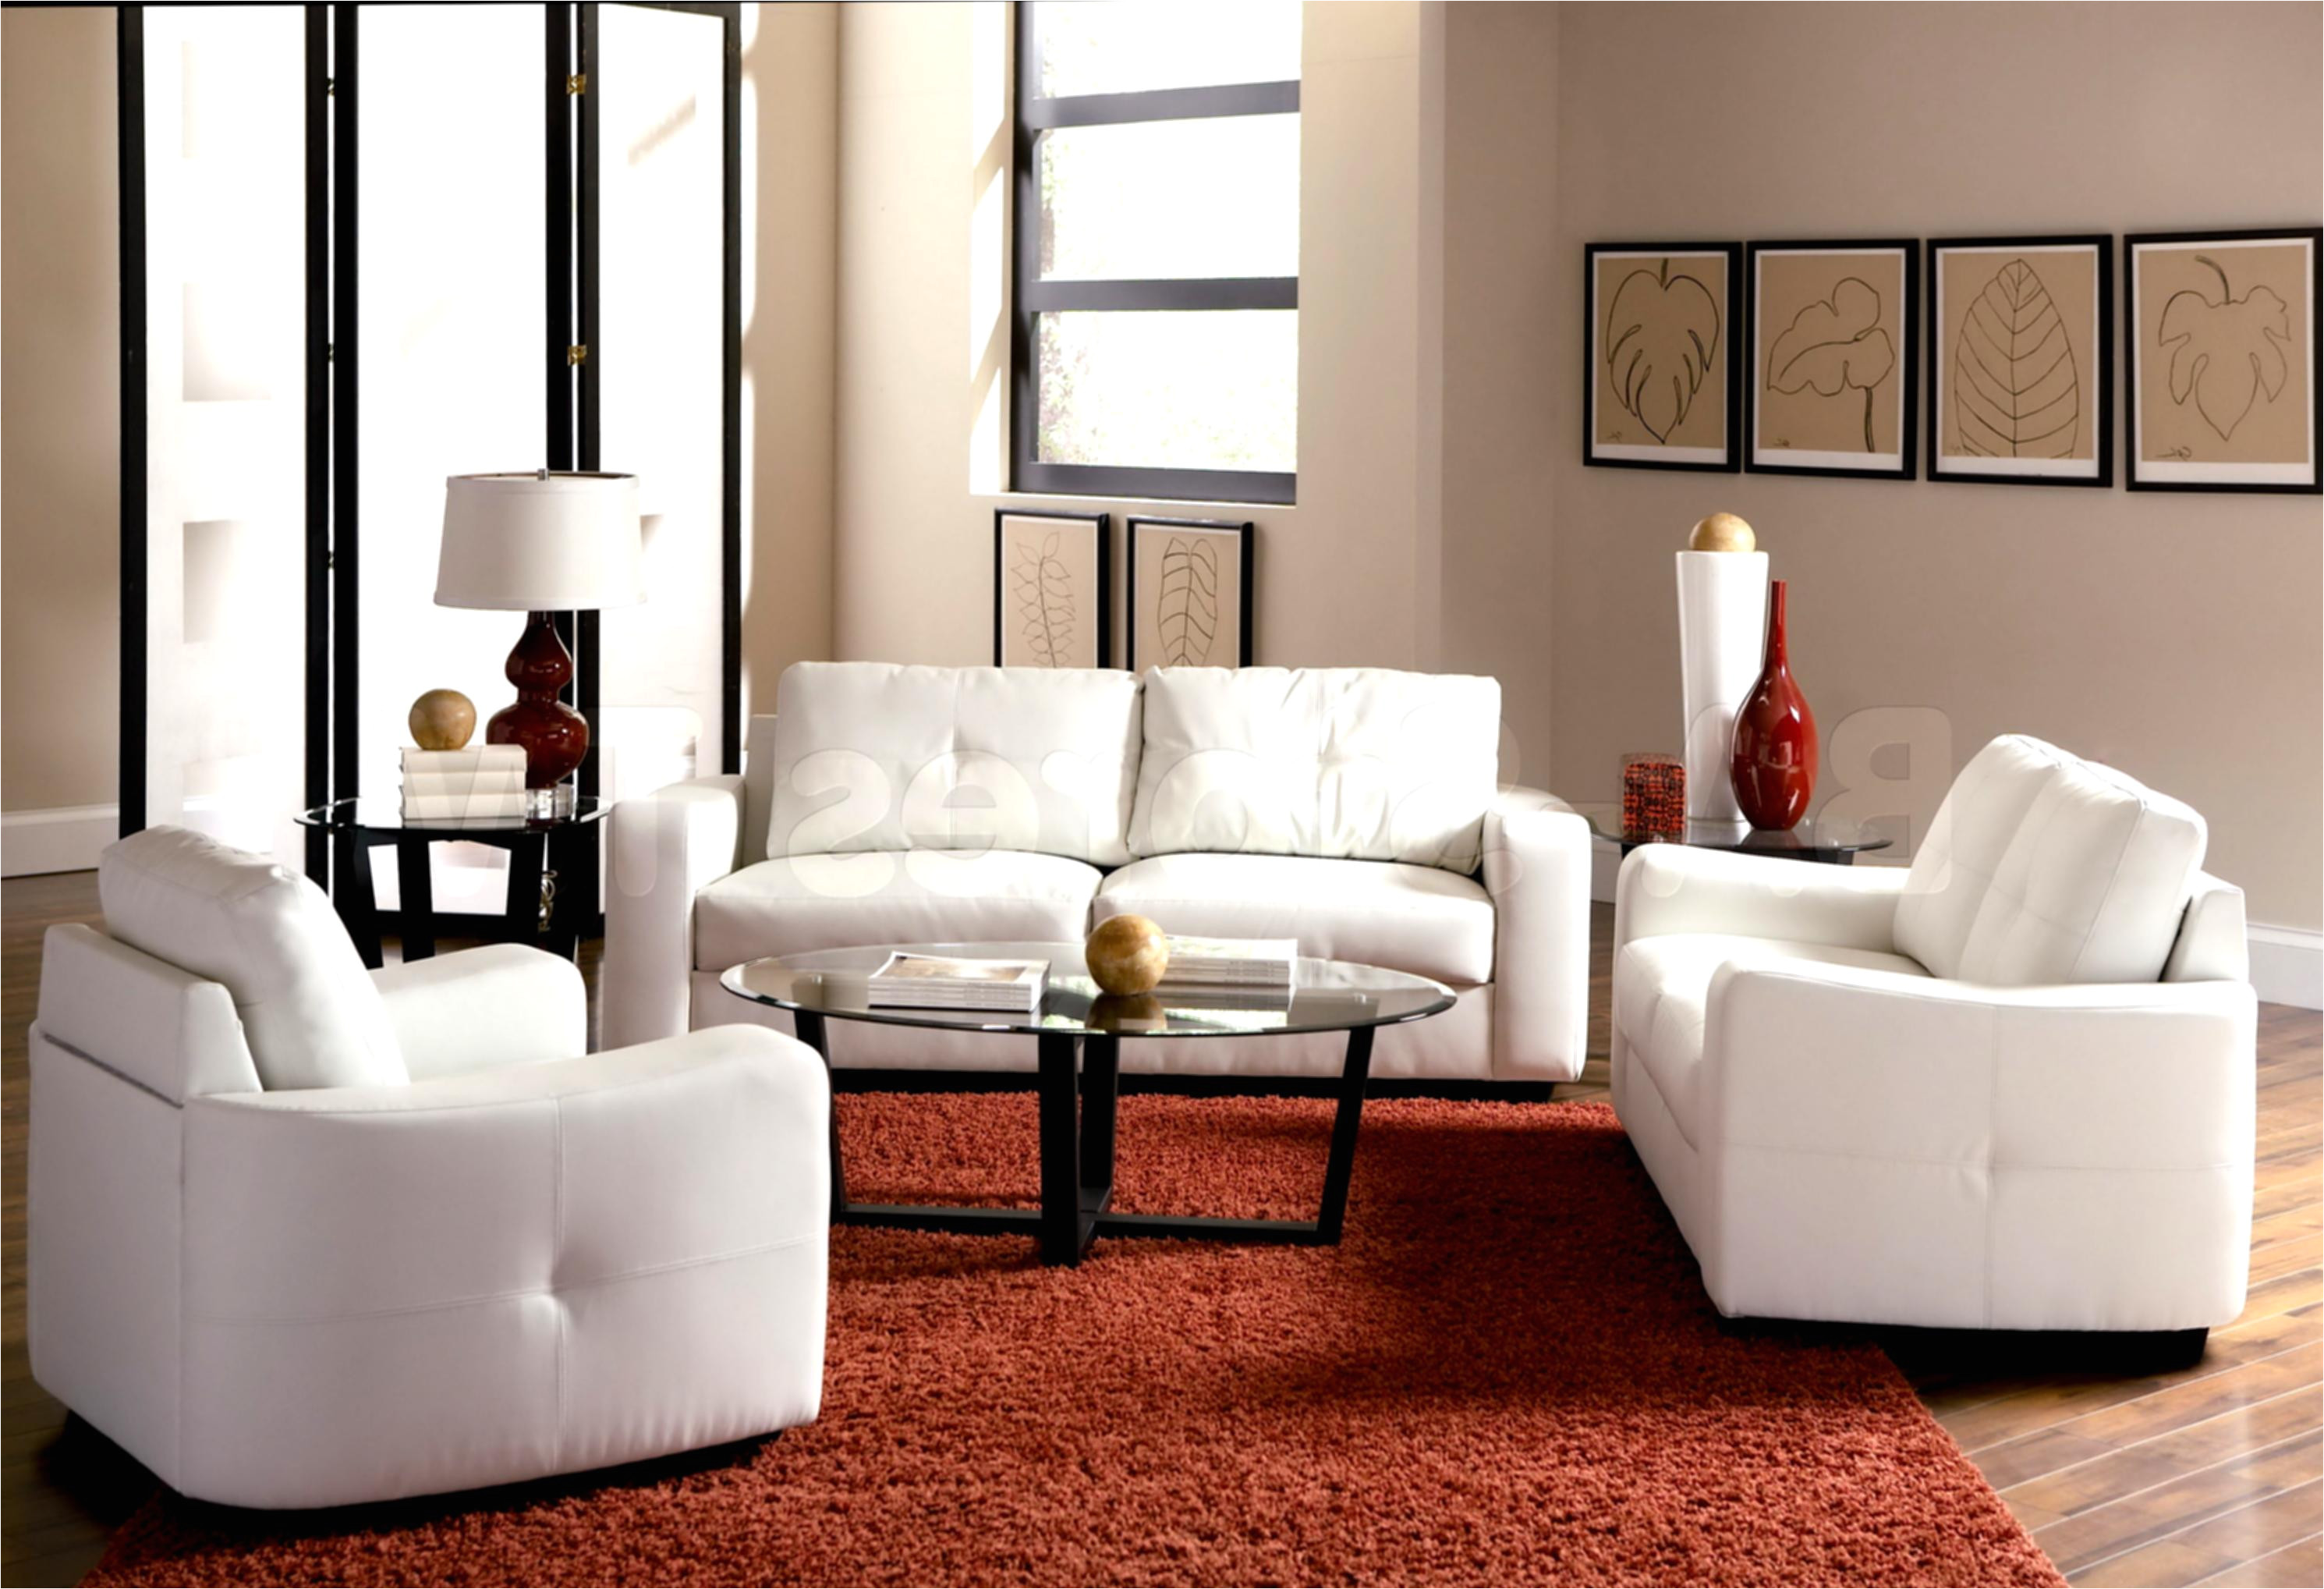 macys leather sectional sofa inspirational dazzling modern living room sofa ideas 33 24 unique decor furniture